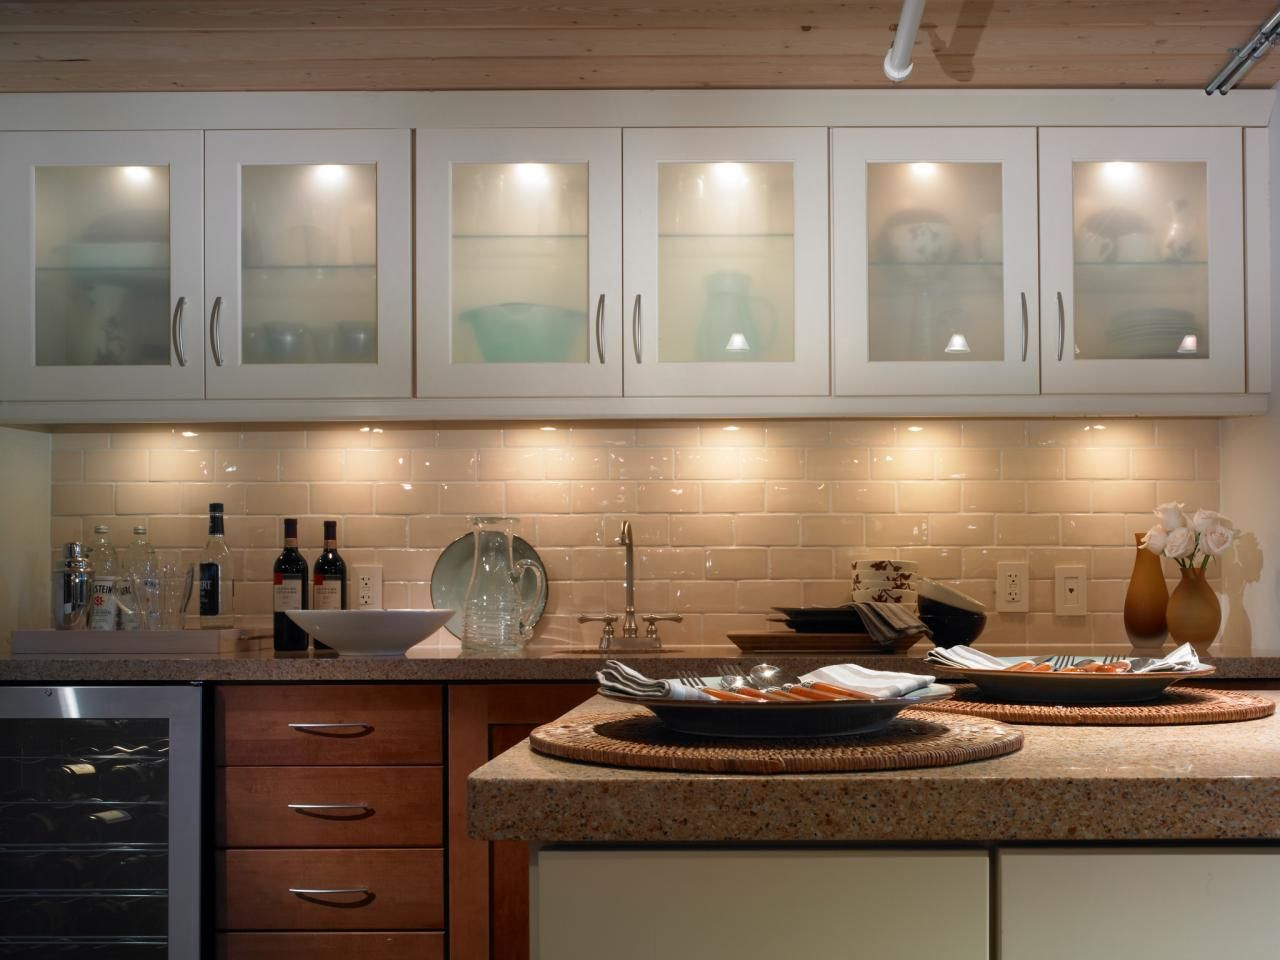 Kitchen Lighting Design Tips Inside Kitchen Cabinets Light Kitchen Cabinets Best Kitchen Lighting